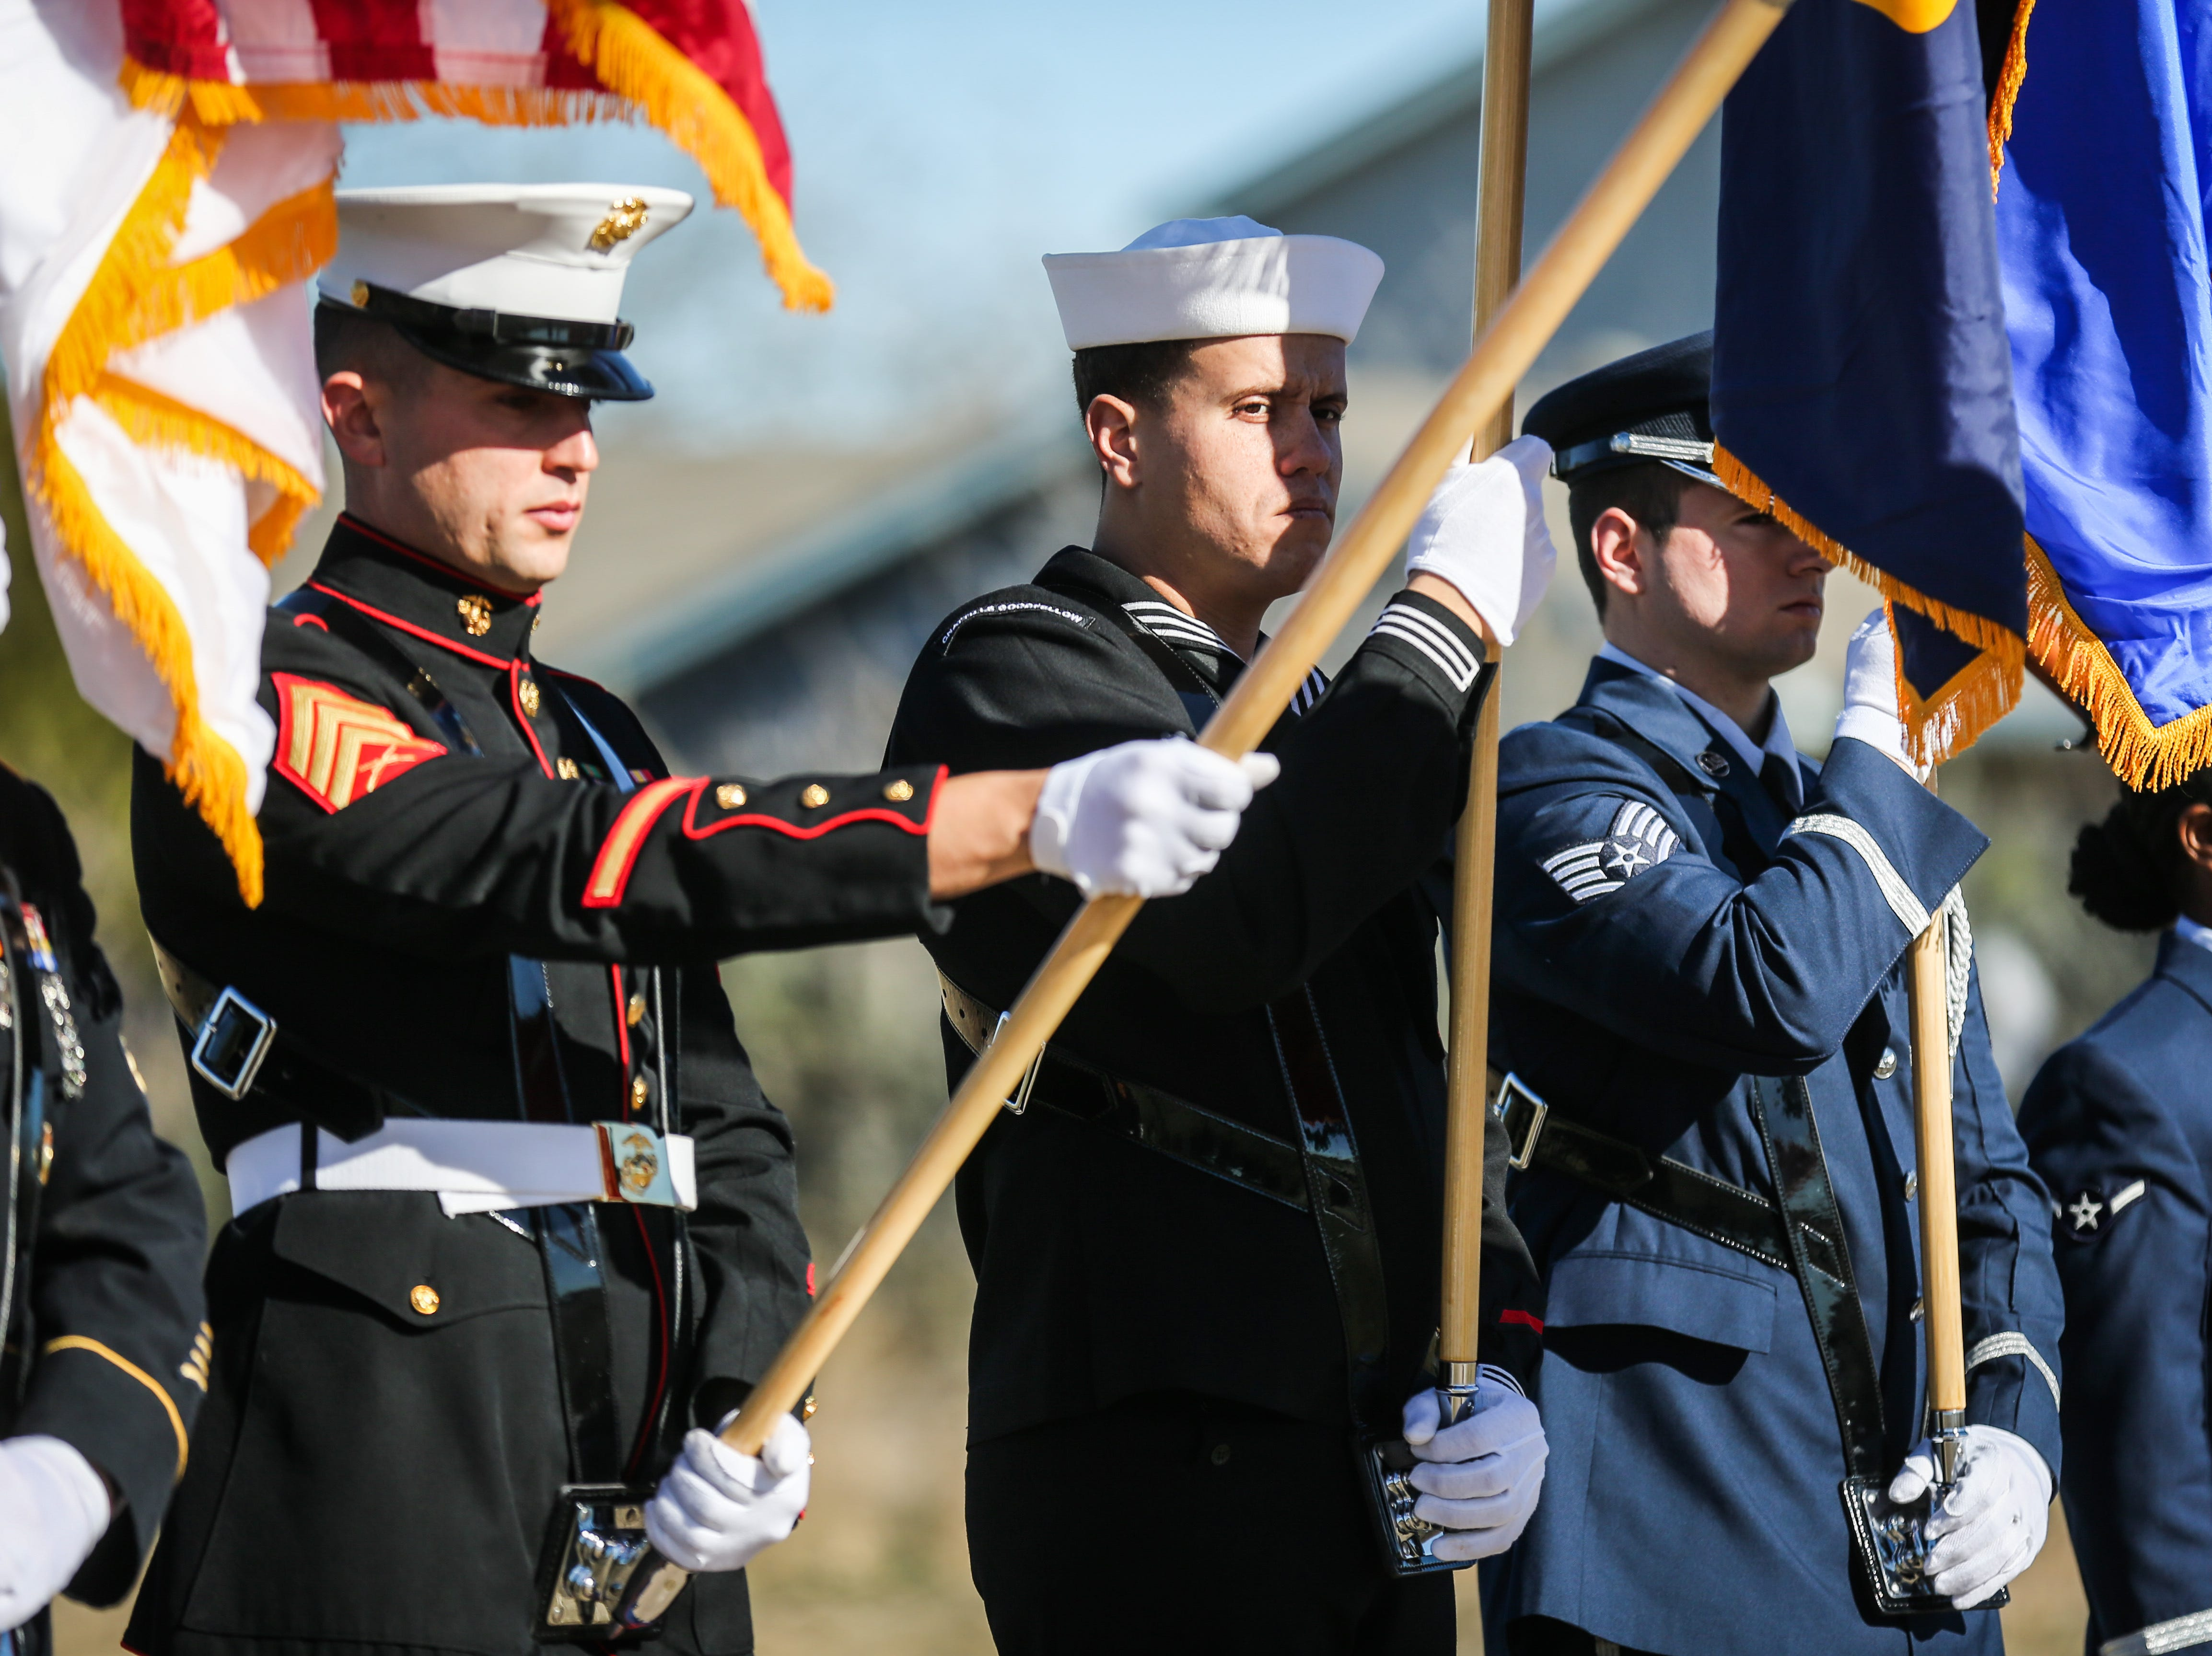 The color guard presents the flags during the Wreaths Across America ceremony Saturday, Dec. 15, 2018, at Belvedere Memorial Park.